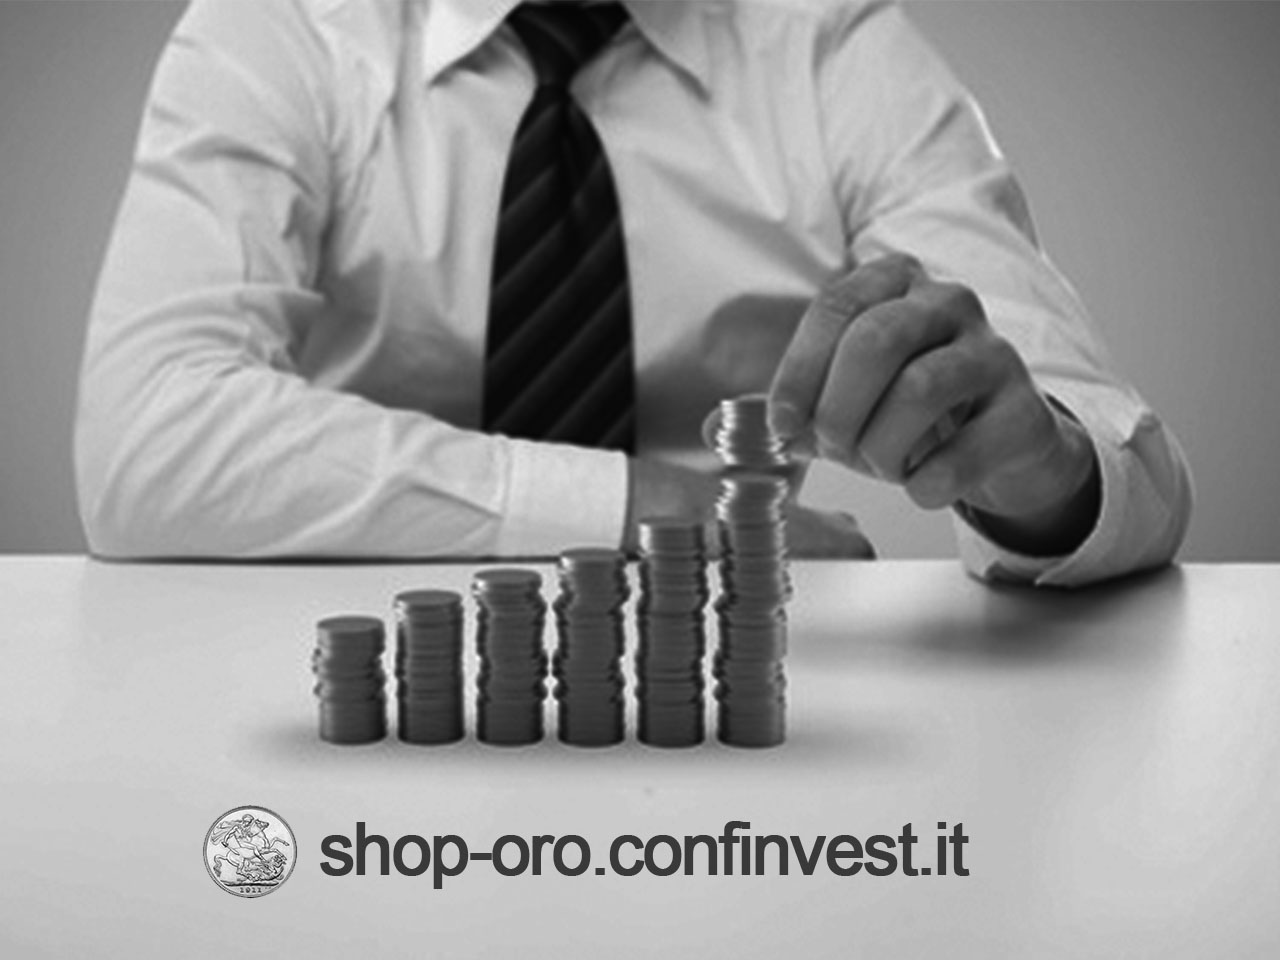 e-commerce-seo-newsletter-social-network-shop-oro-confinvest-contessifostinelli